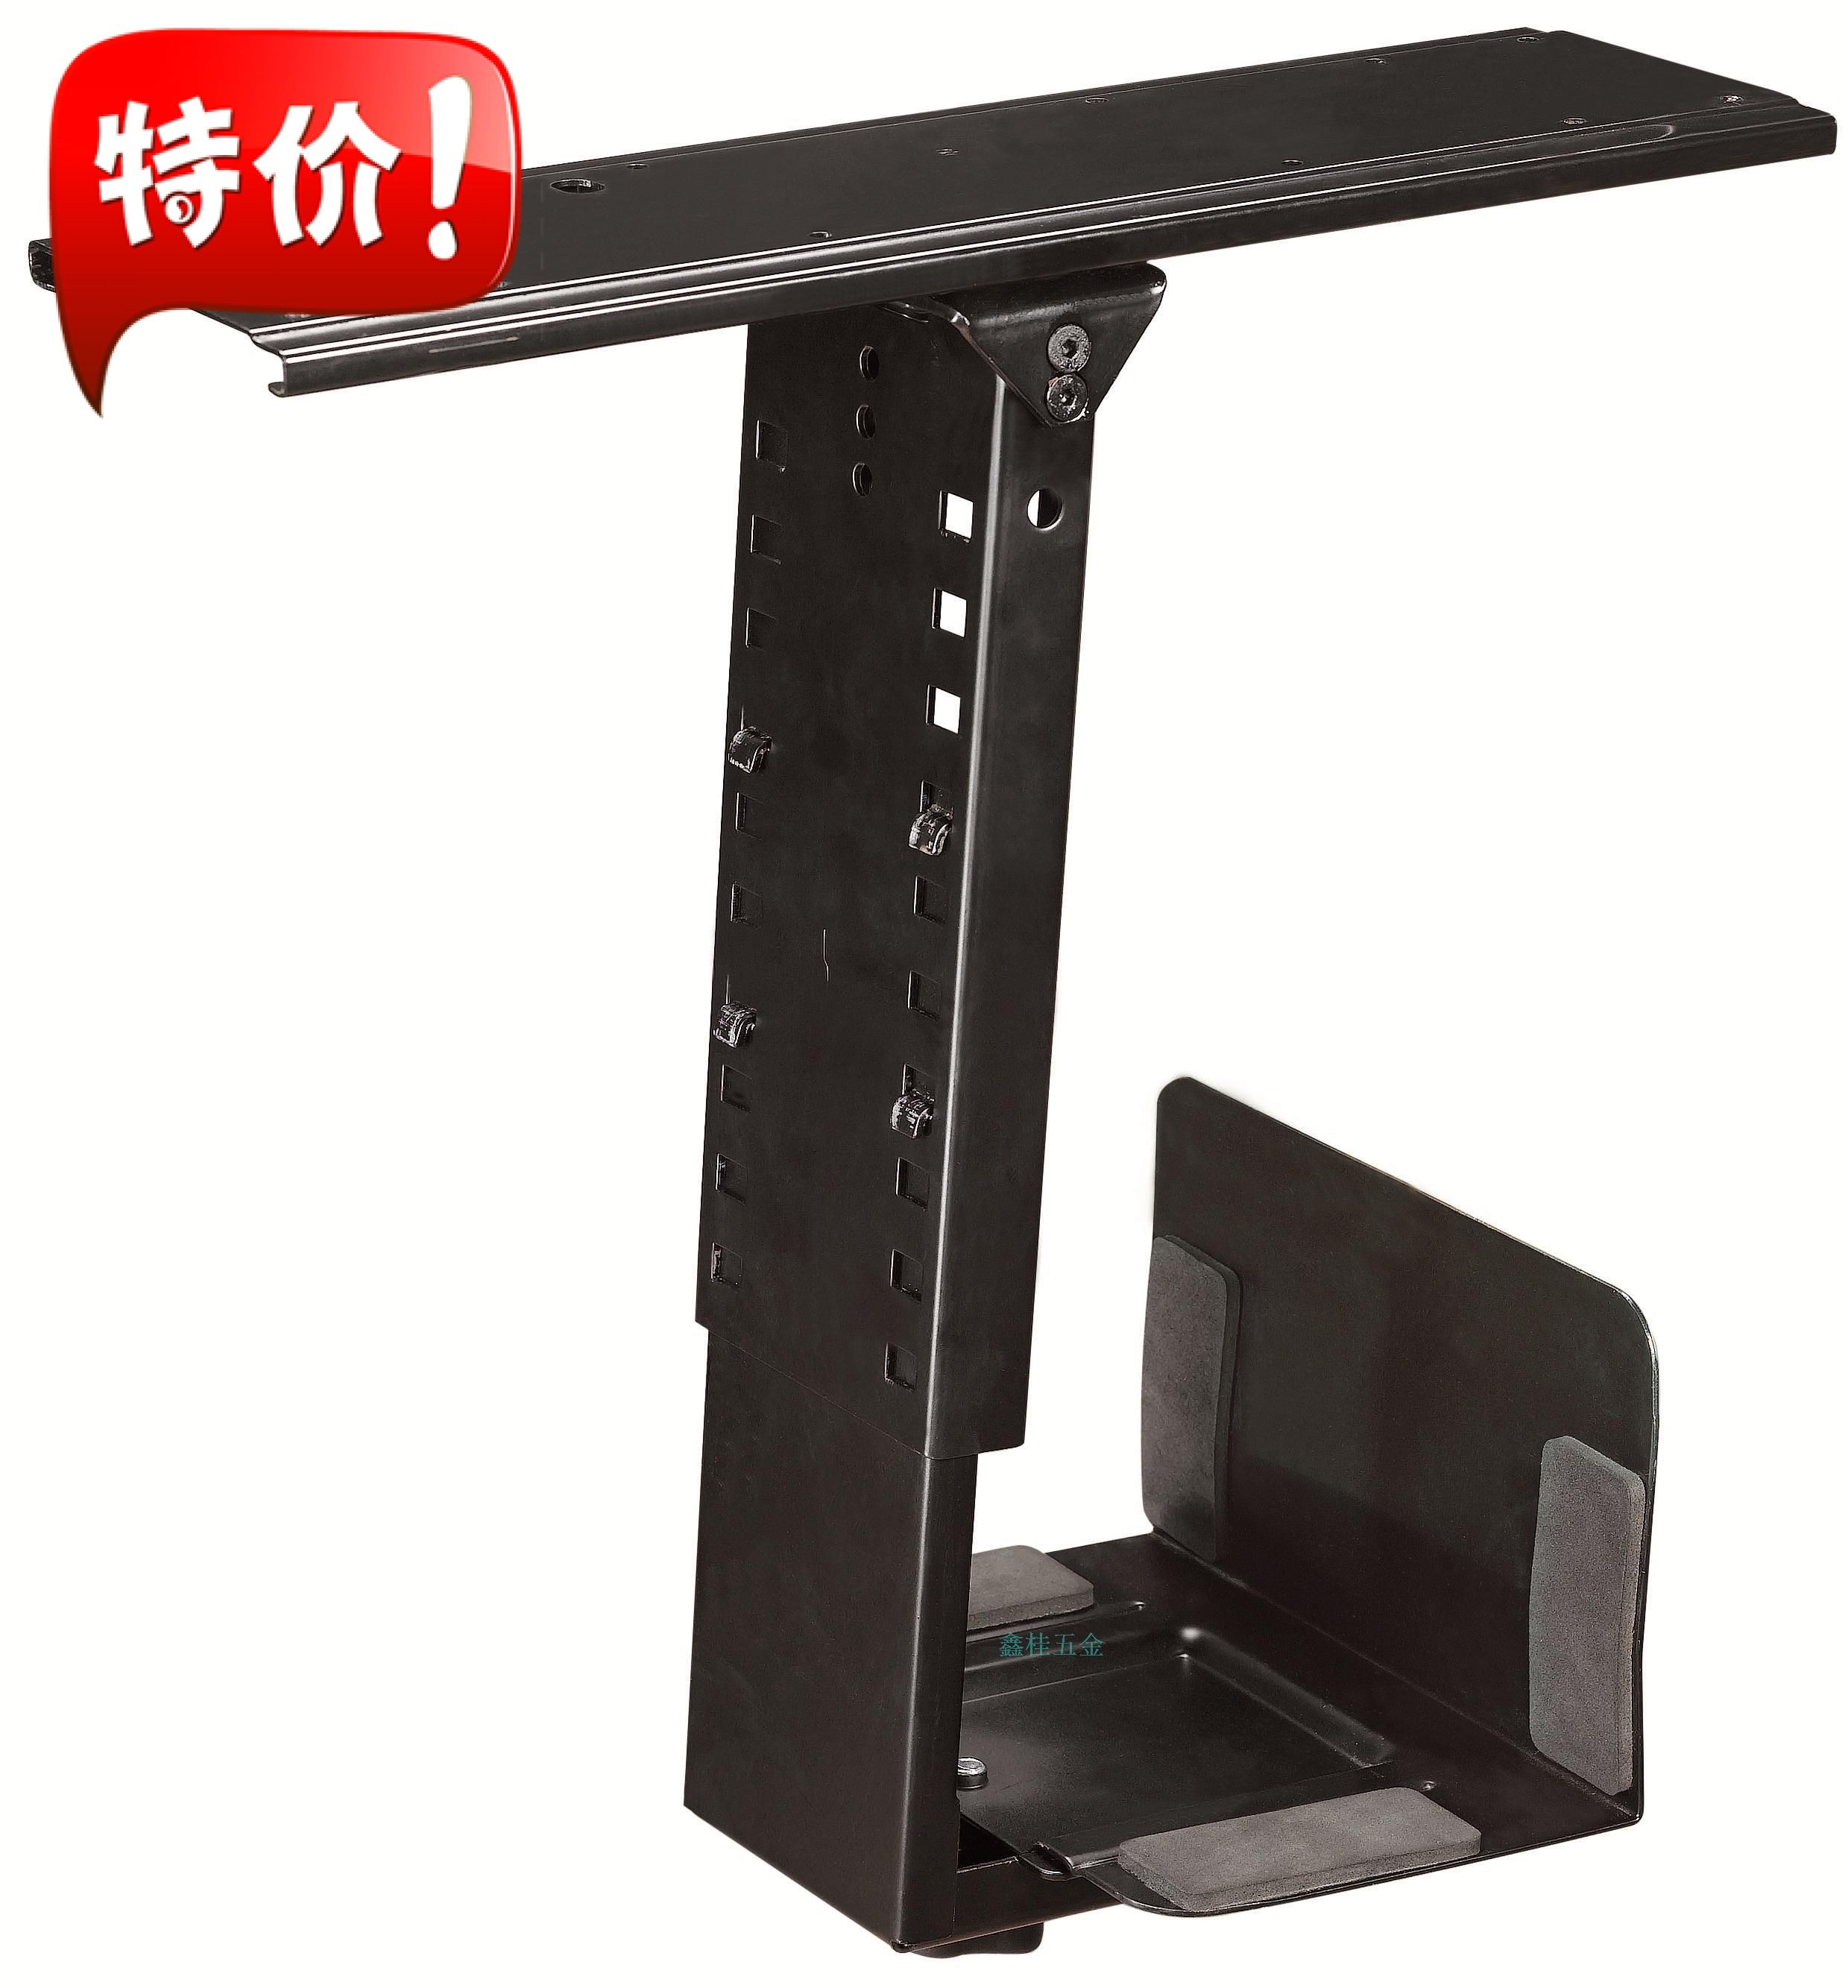 Beau Special Explosion Models Full Steel Refining Computer Chassis Bracket 360  Degree Ergonomic Rotation Of The Lifting